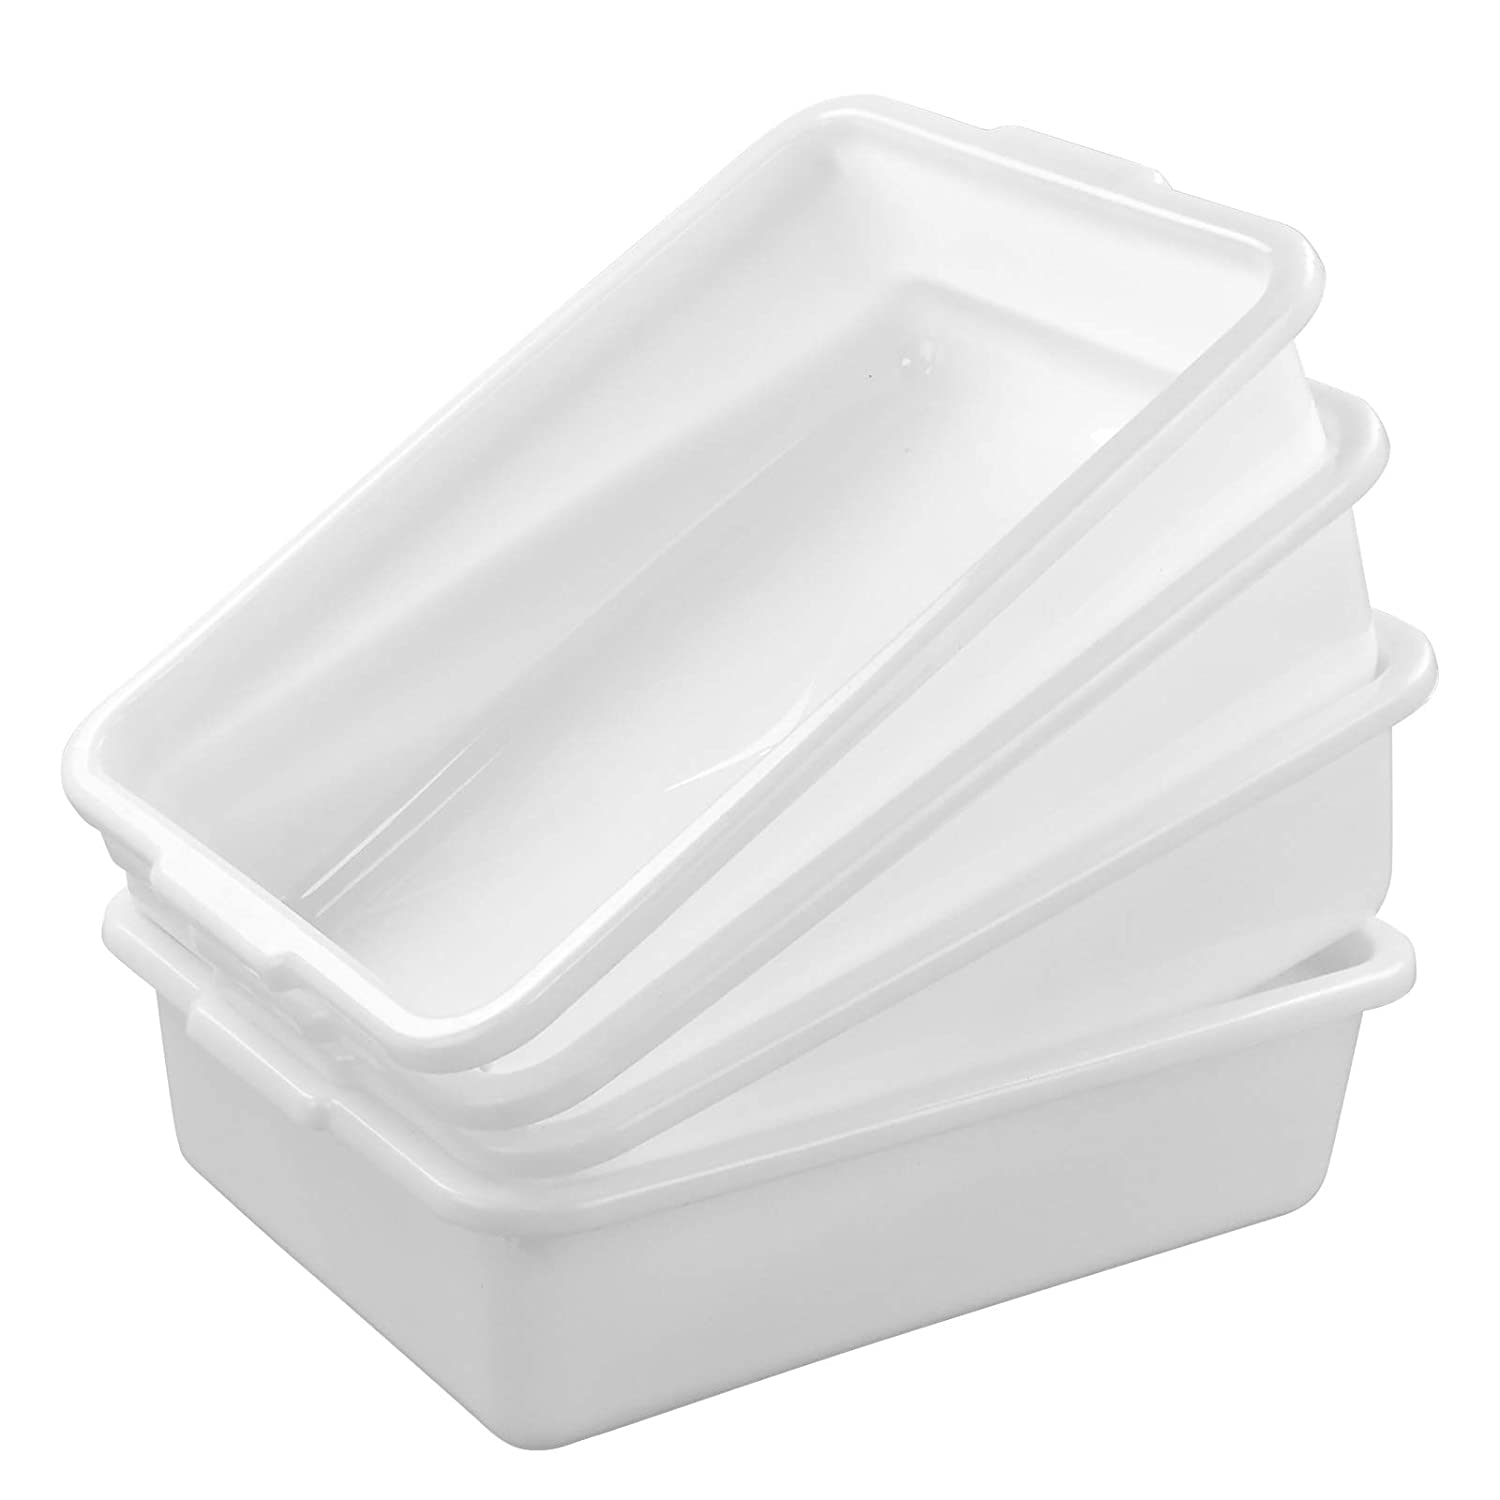 Dehouse White Plastic Bus Pans, 4 Packs Food Service Bus Tubs, 8 Liter